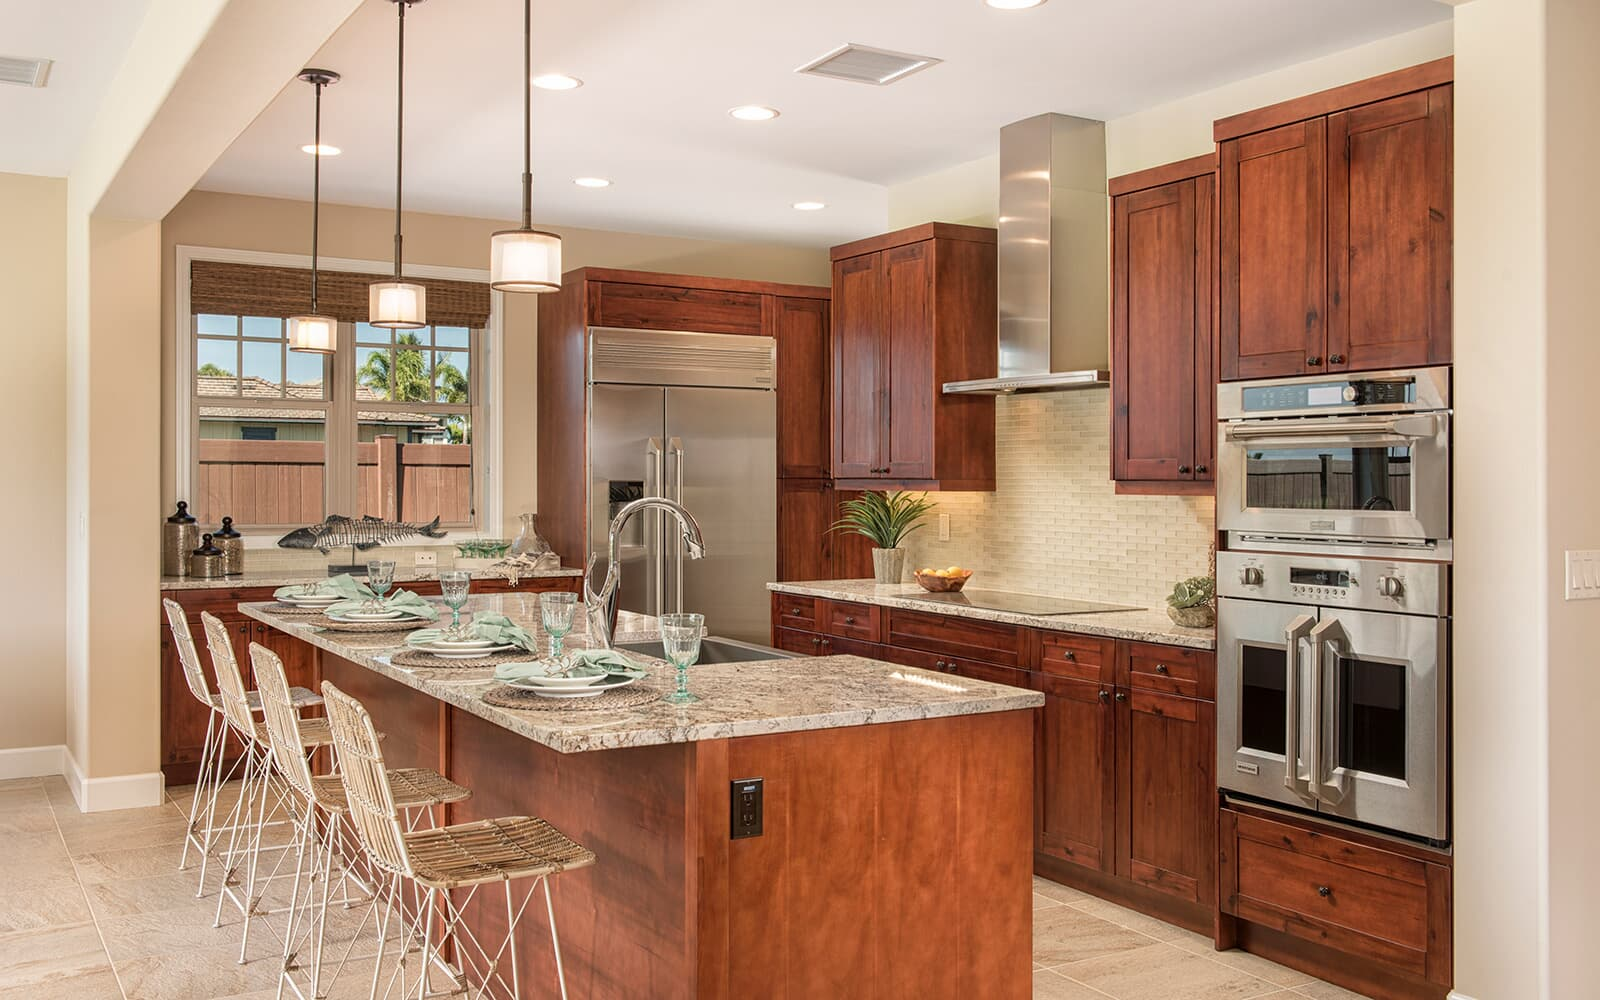 kitchen-plan-3-holua-kai-at-keauhou-big-island-brookfield-residential